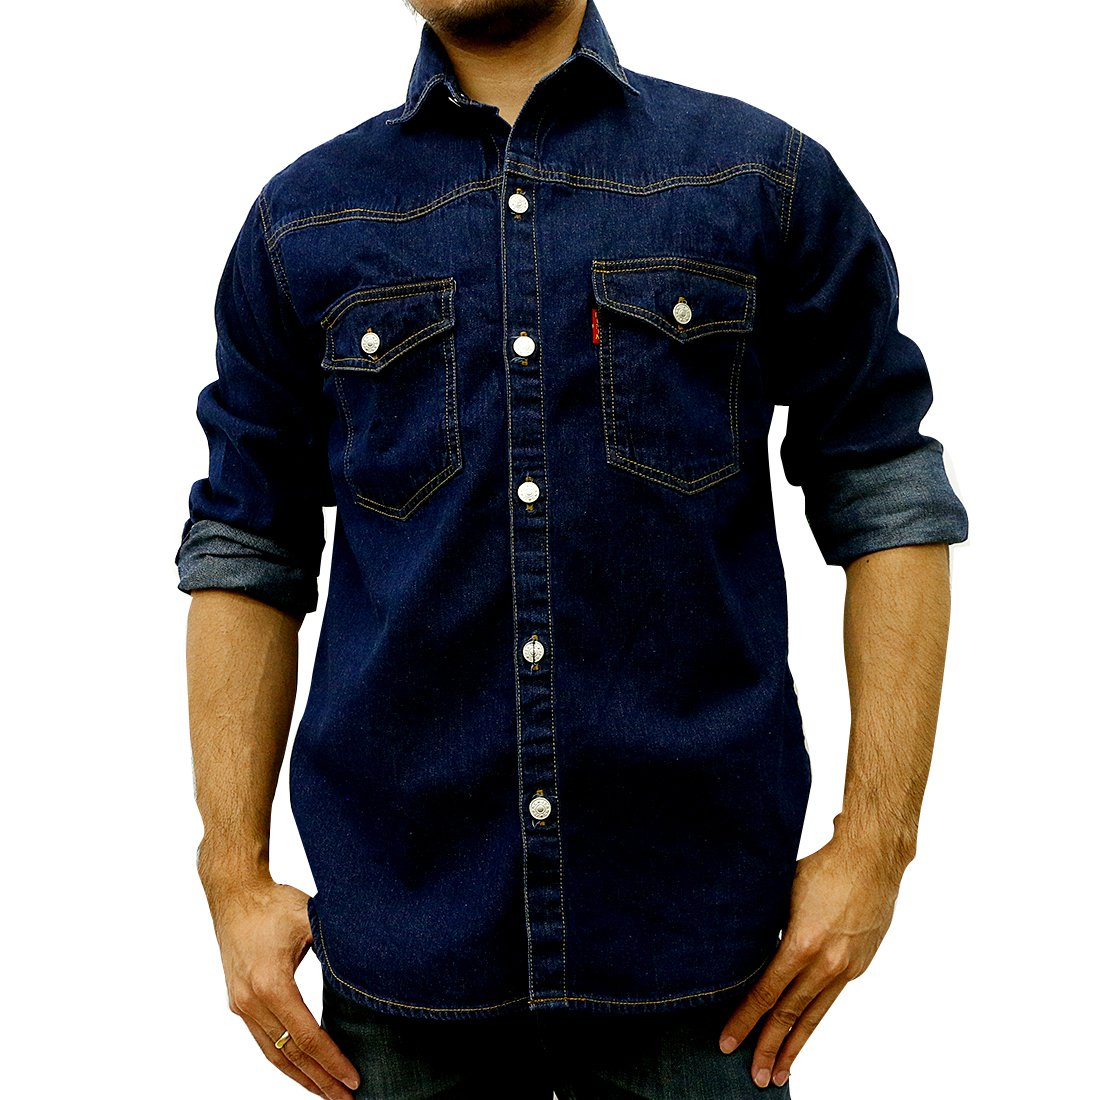 Taruron Denim Washed, Blue, Dark Jeans Casual Jacket for Men